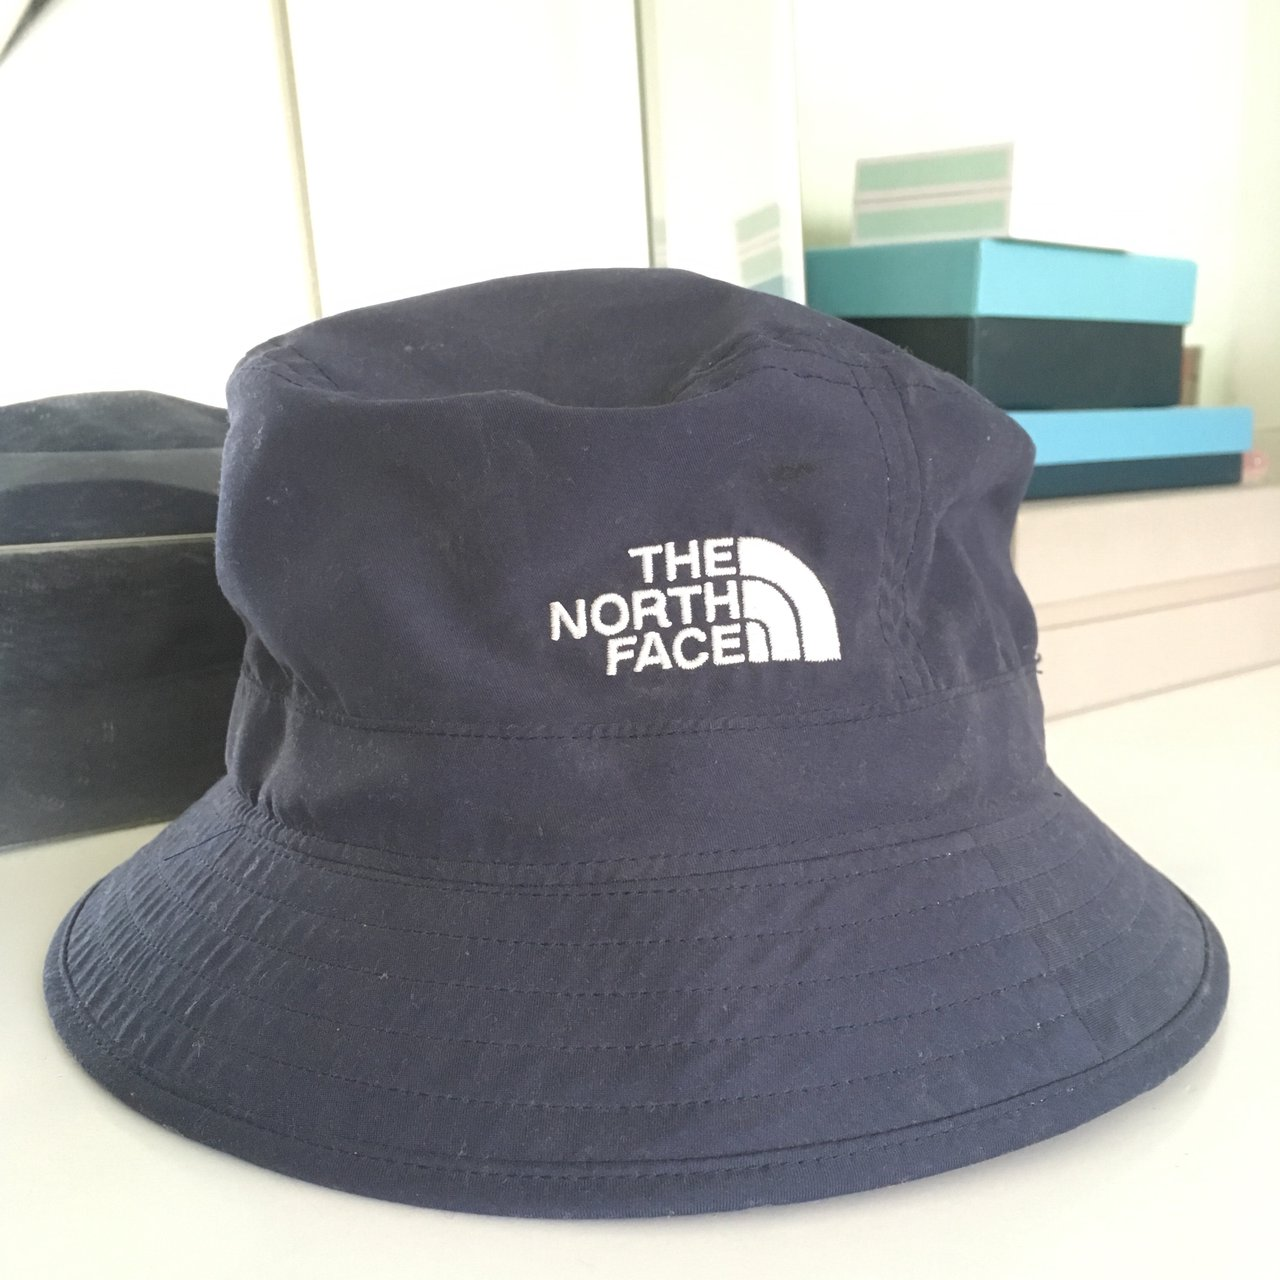 The North Face Bucket Hat HARDLY WORN  the  north  face - Depop 69d6c2cb5d6